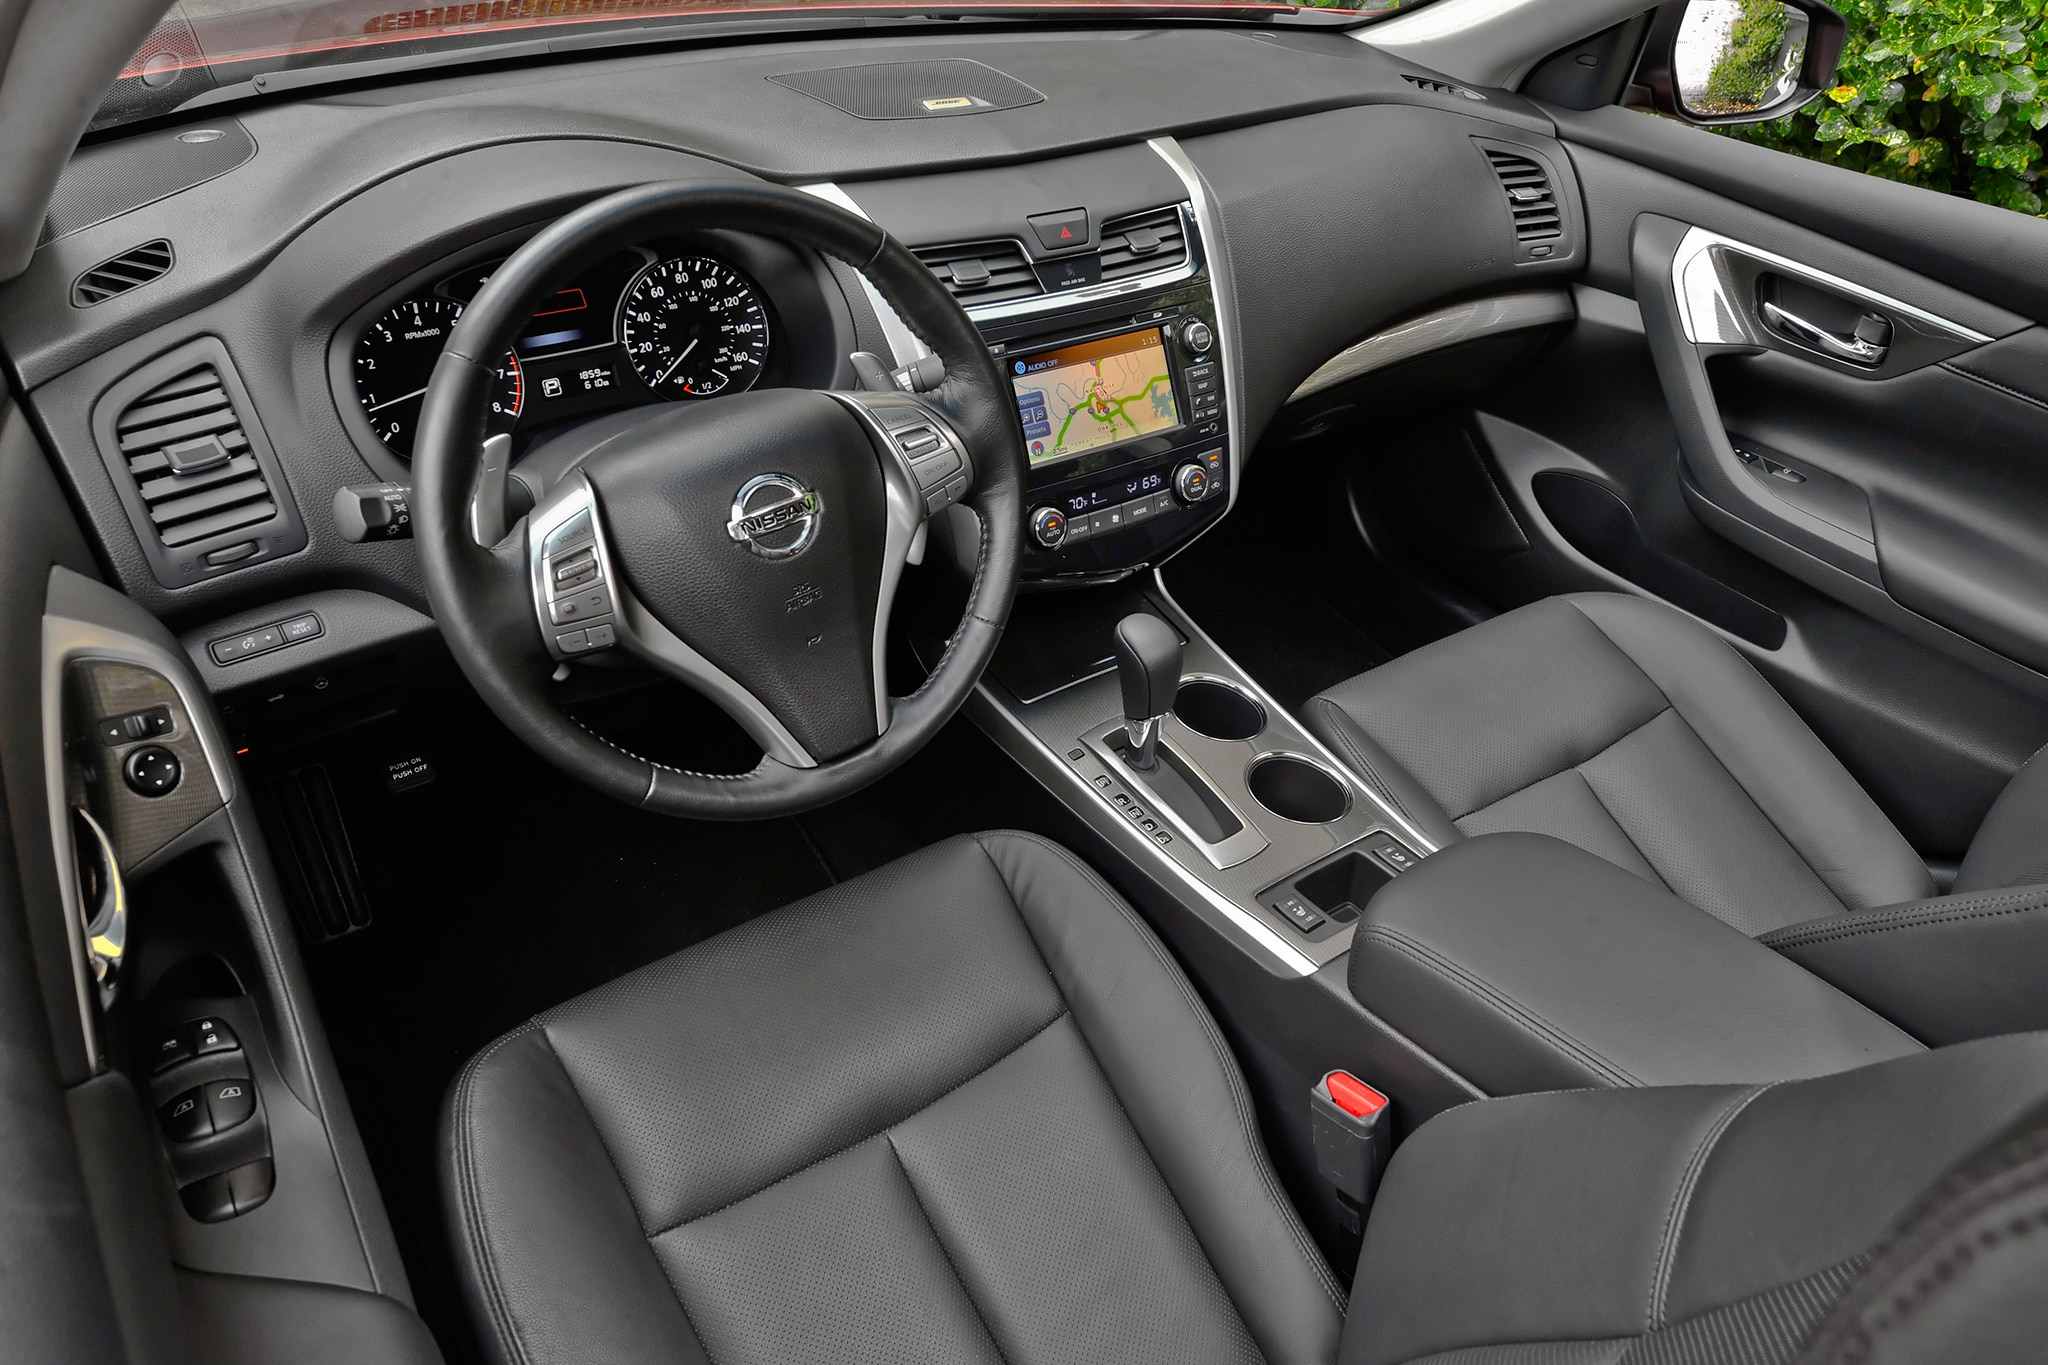 2002 nissan maxima black interior gallery hd cars wallpaper 2002 nissan maxima black interior images hd cars wallpaper 2014 nissan altima 25 sl around the vanachro Images